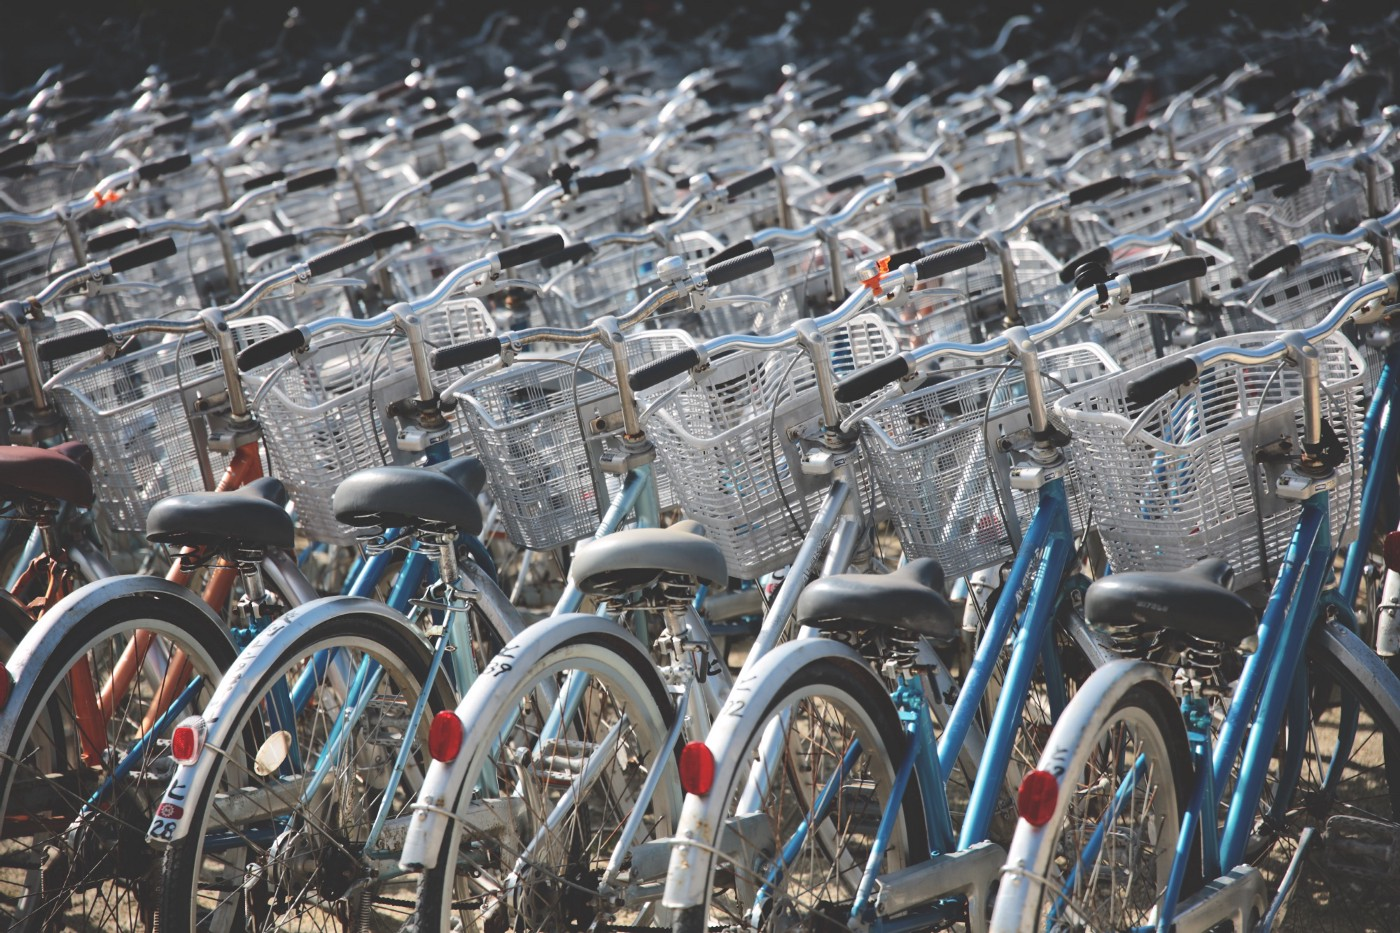 A collection of bicycles